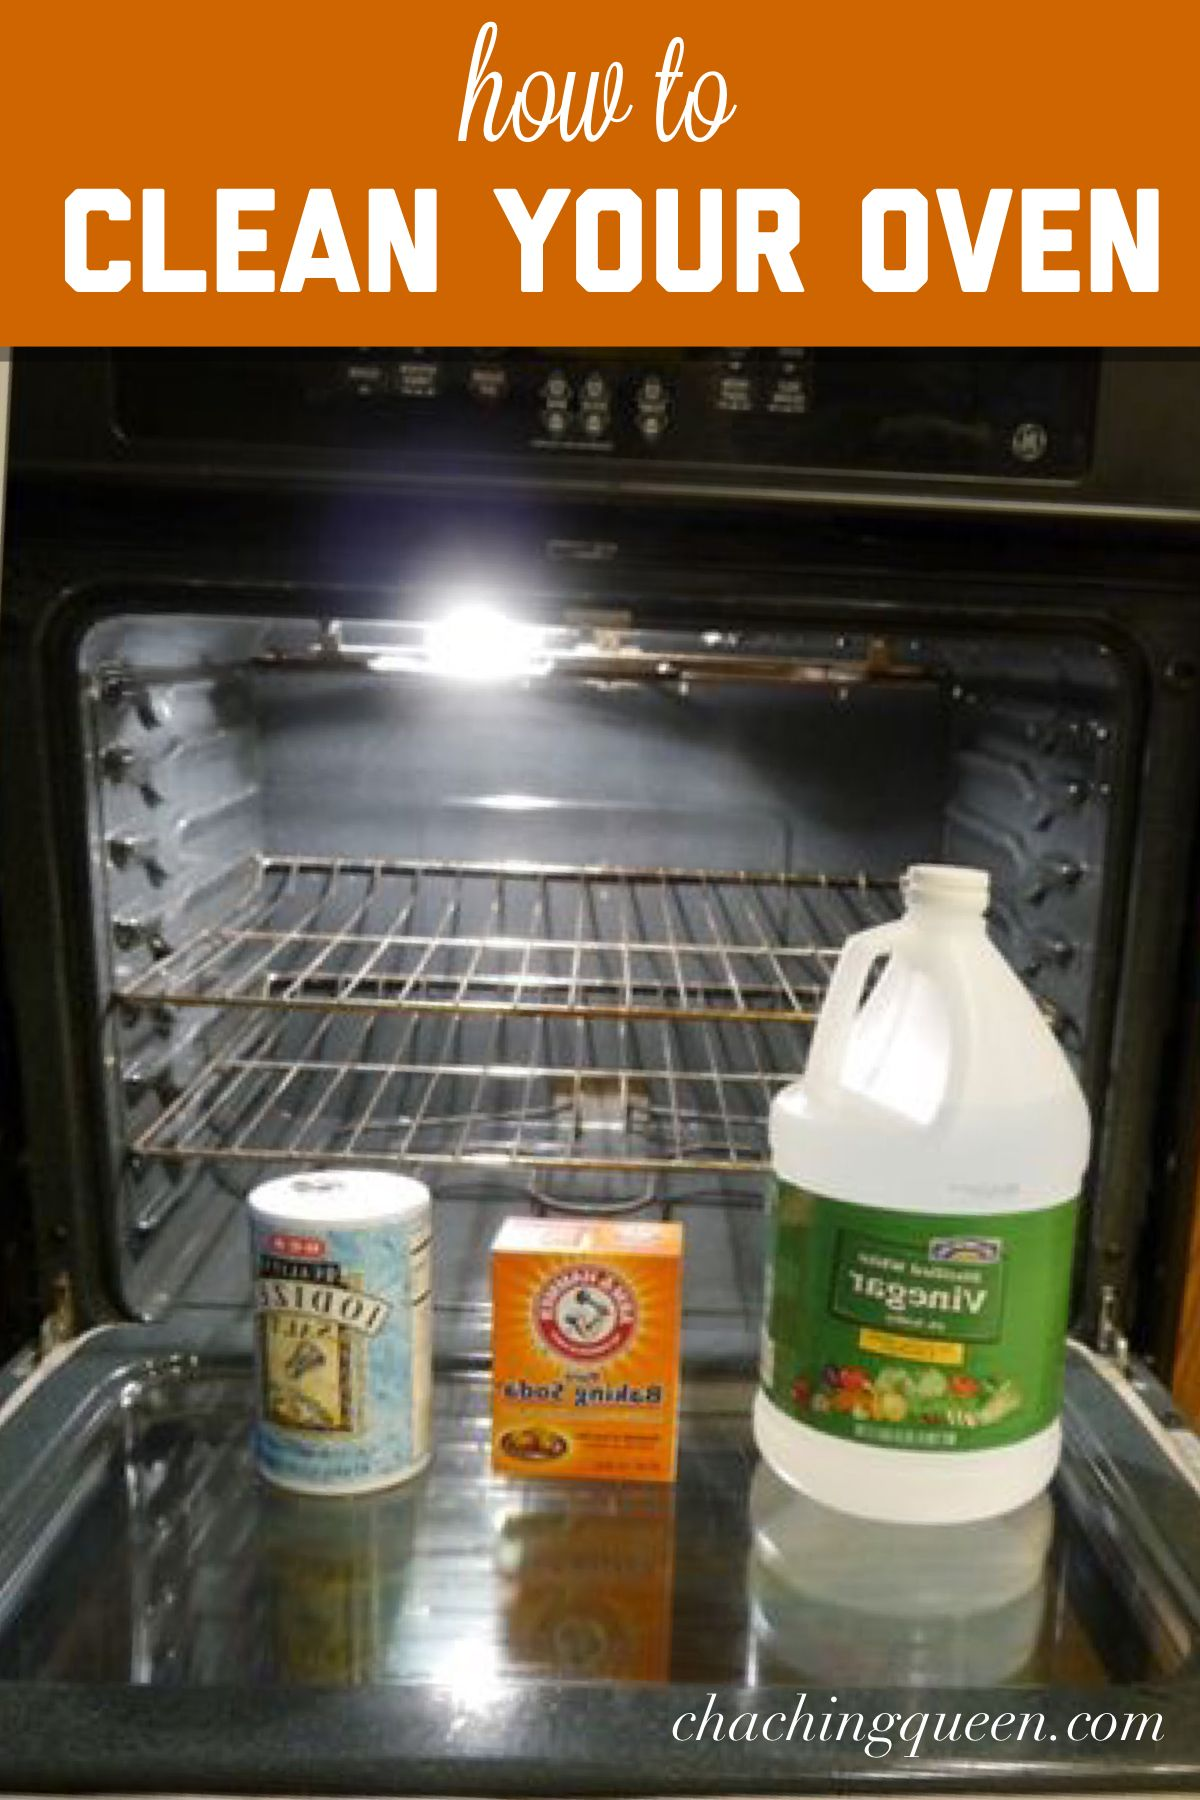 How To Clean Your Oven With Vinegar And Baking Soda For Green